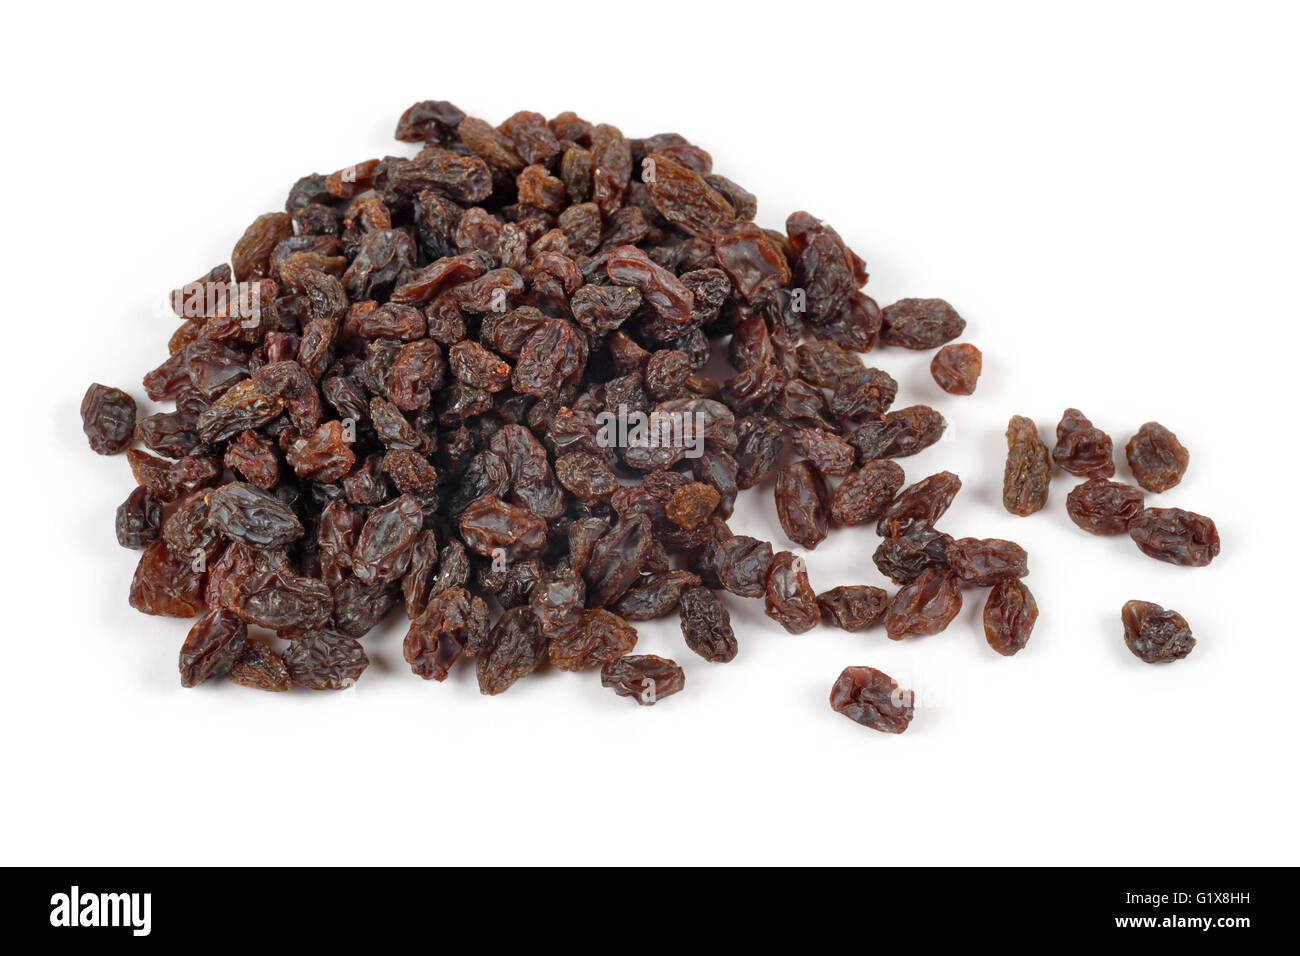 Photo d'un tas de raisins sur un fond blanc. Photo Stock